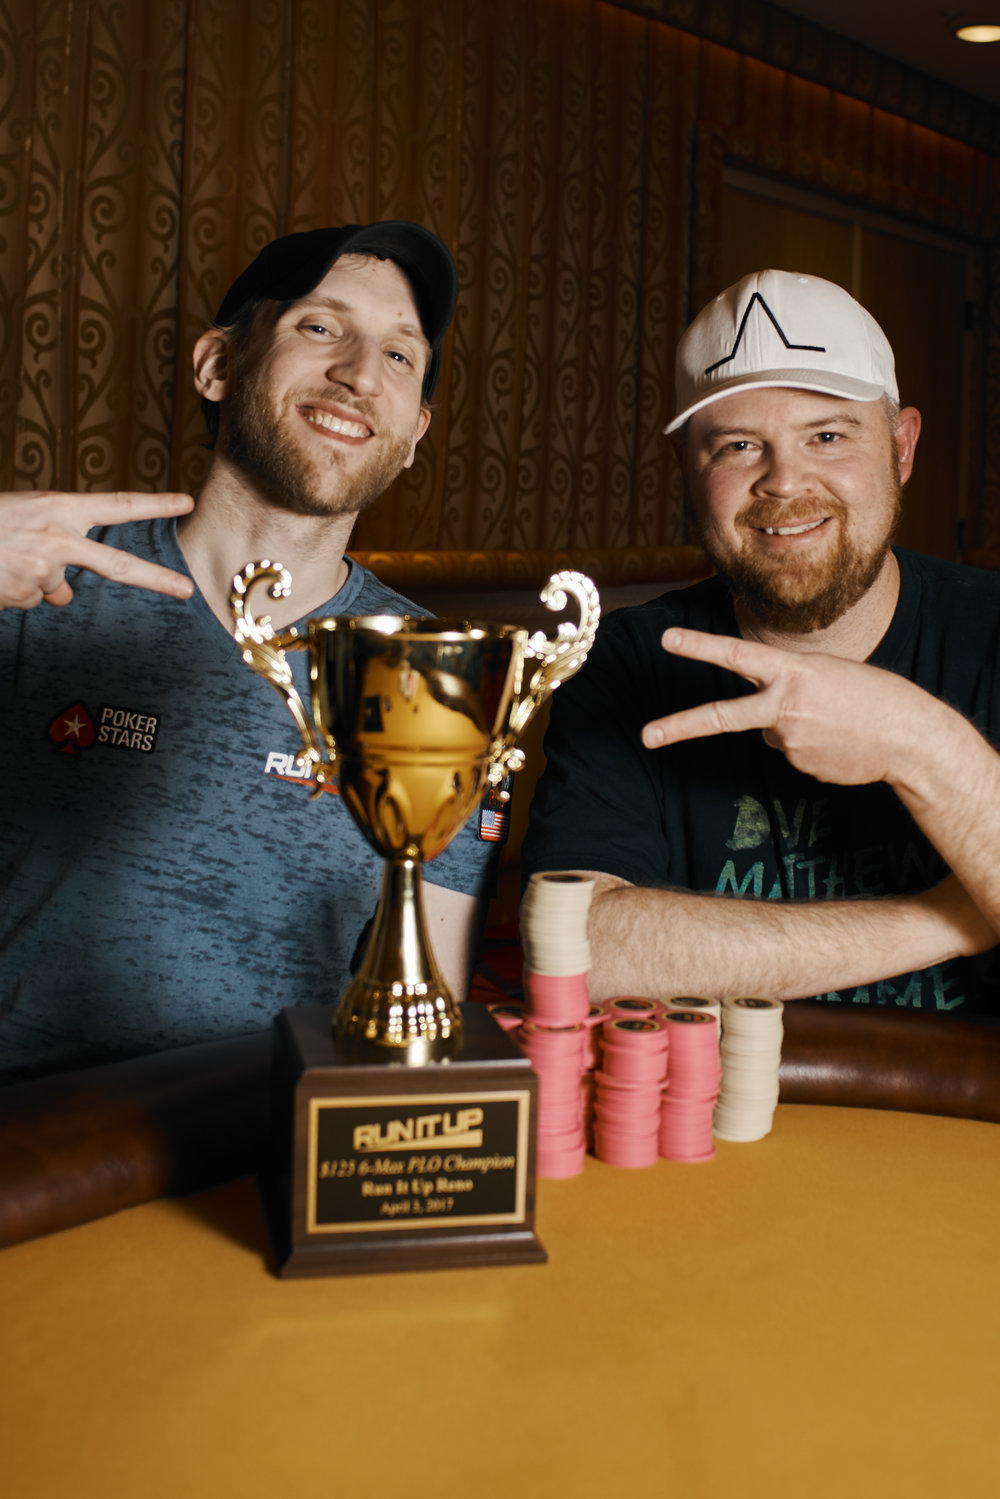 Jason Somerville and Jeff Chapman